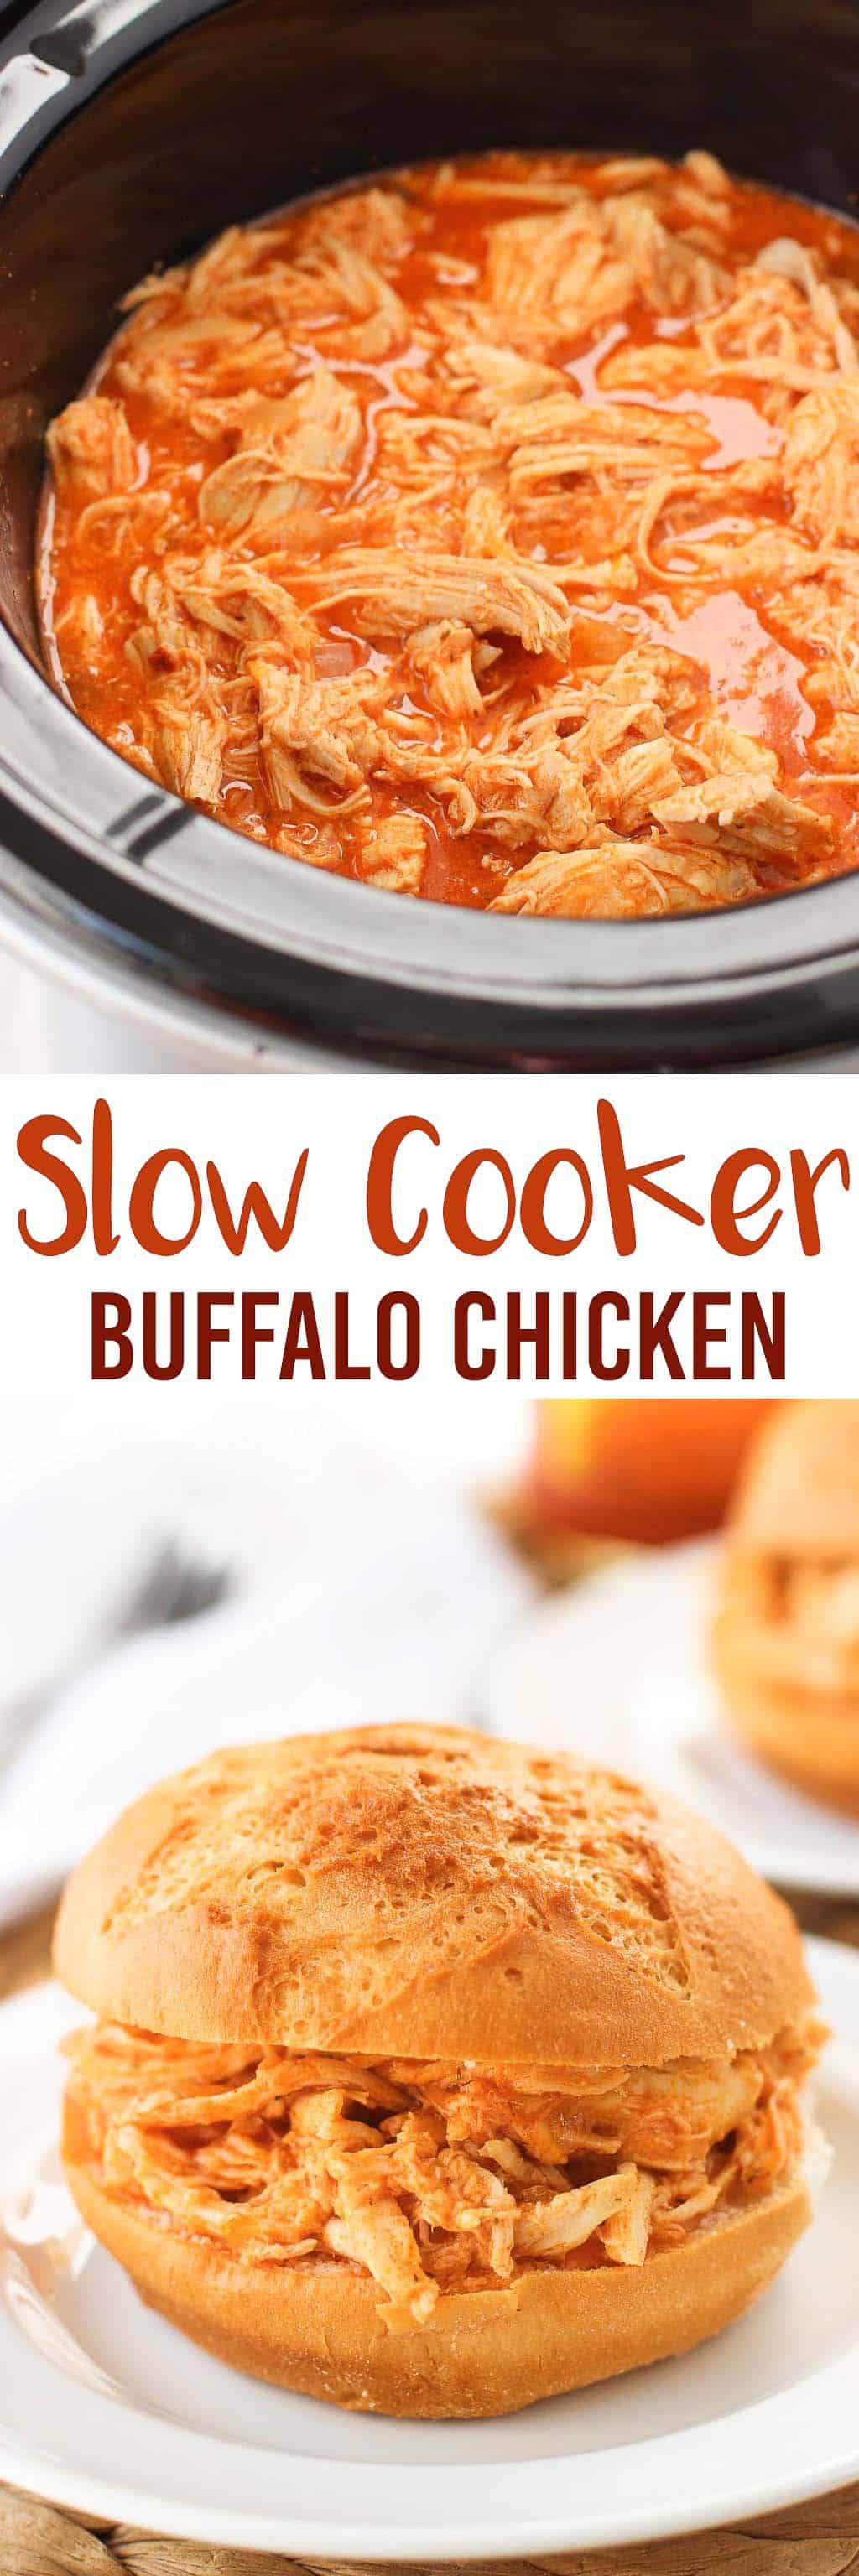 This slow cooker buffalo chicken is juicy, spicy, and simple! Onion and boneless, skinless chicken breasts are covered in a buffalo sauce mixture for a healthy and ultra versatile protein. Great in sandwiches, on salads, and more!